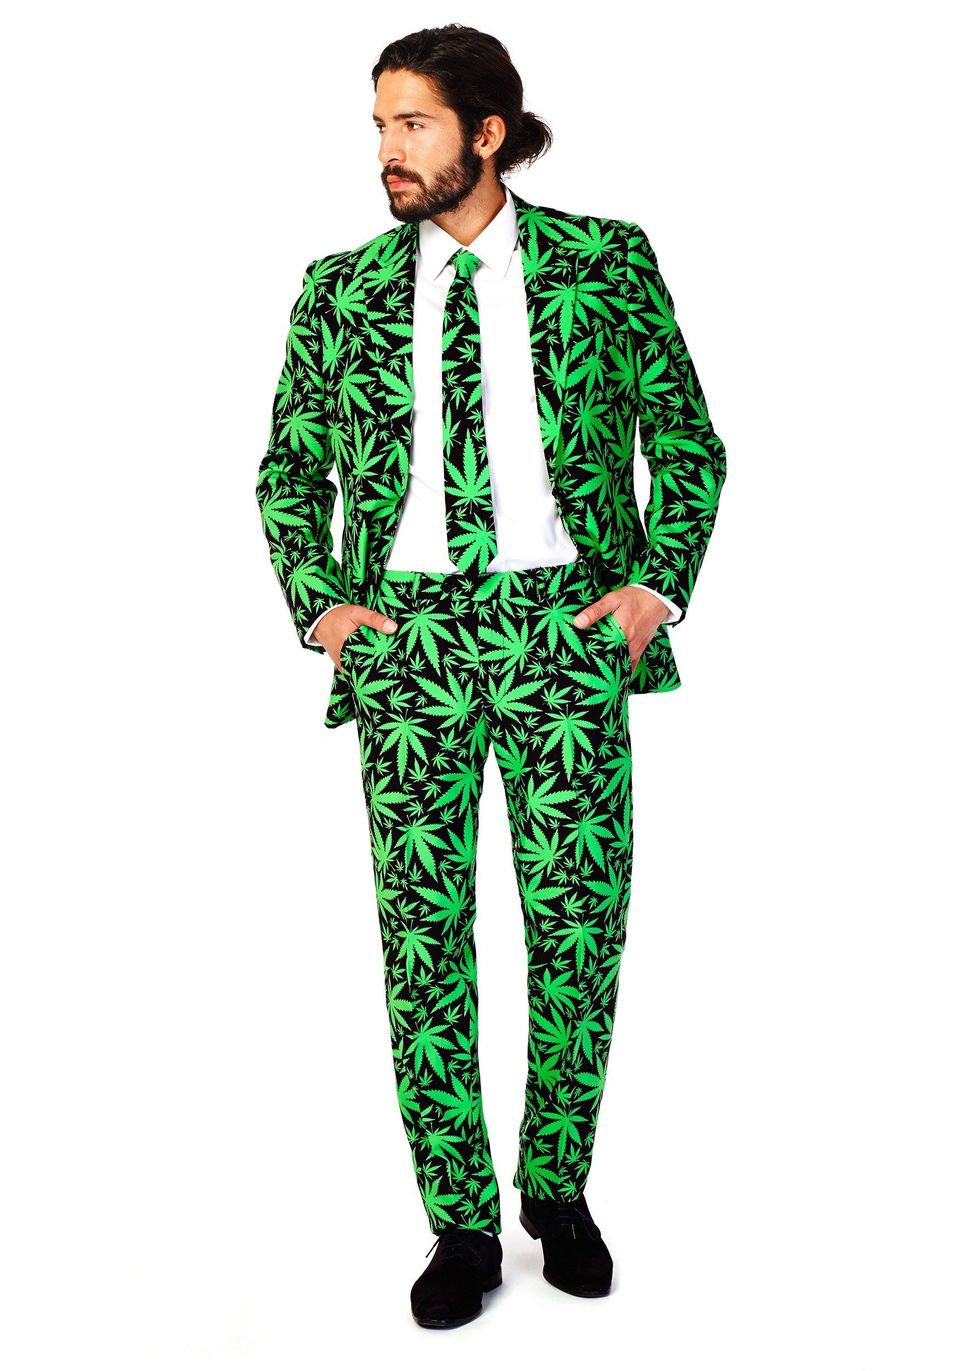 "Got an important date at 4:20? Show up in style with this pot-leaf decorated suit. <a href=""http://www.halloweencostumes.com/"